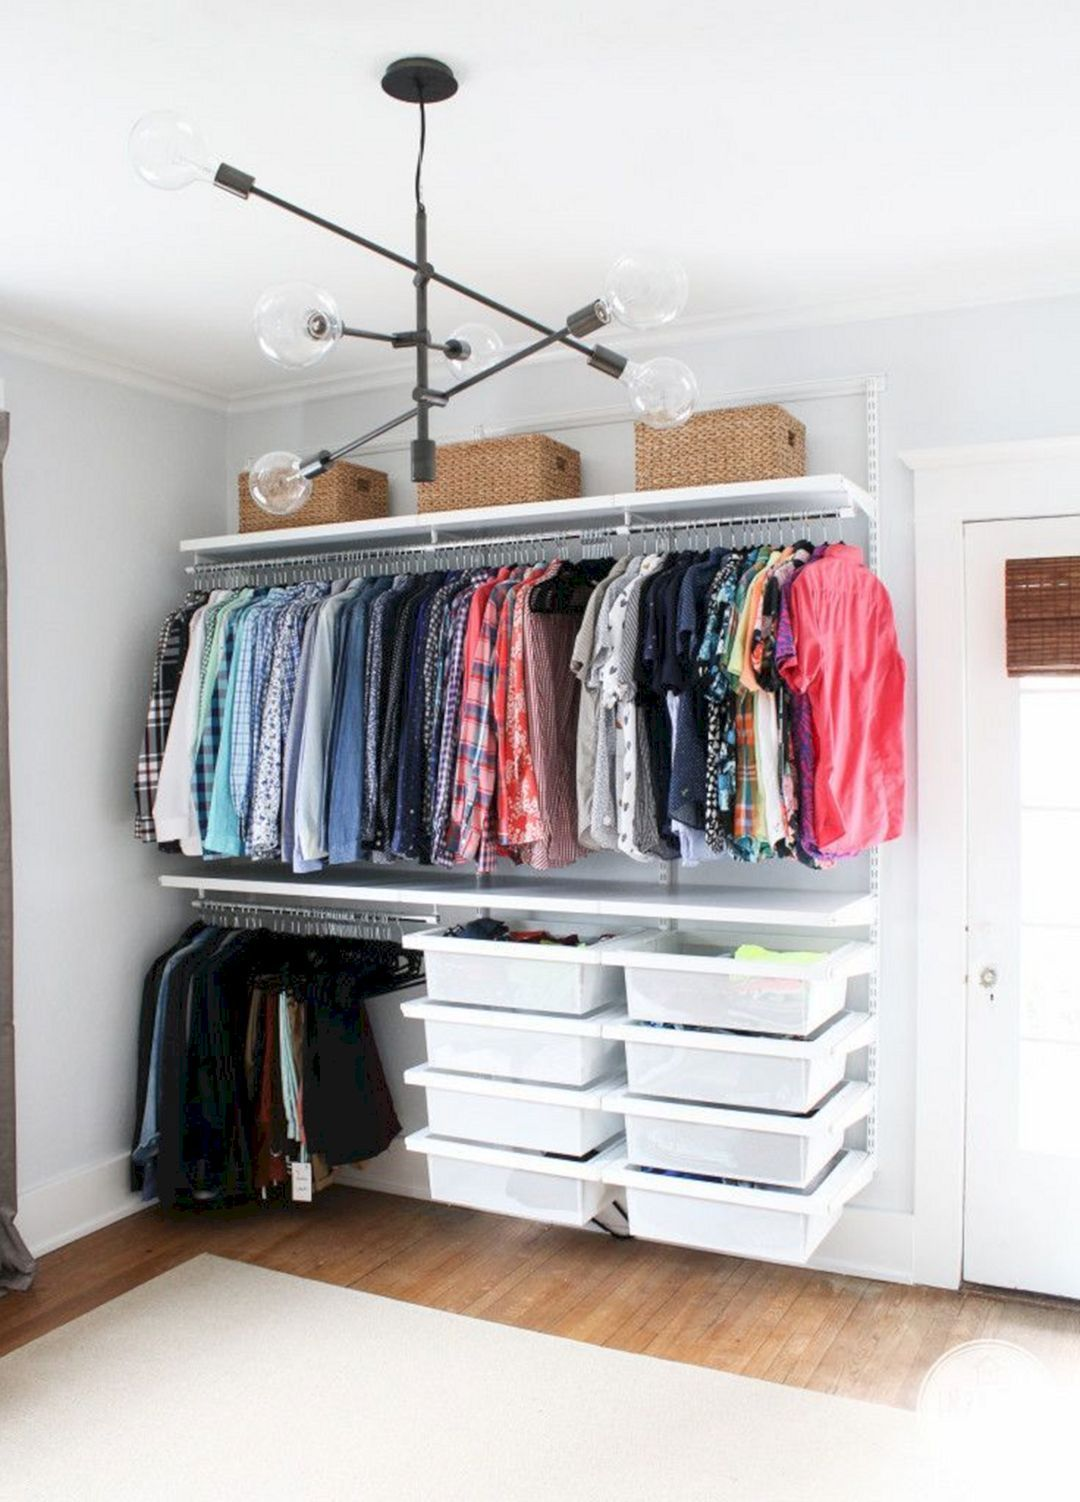 Breathtaking 15 Diy Creative Clothes Storage Ideas For Home That